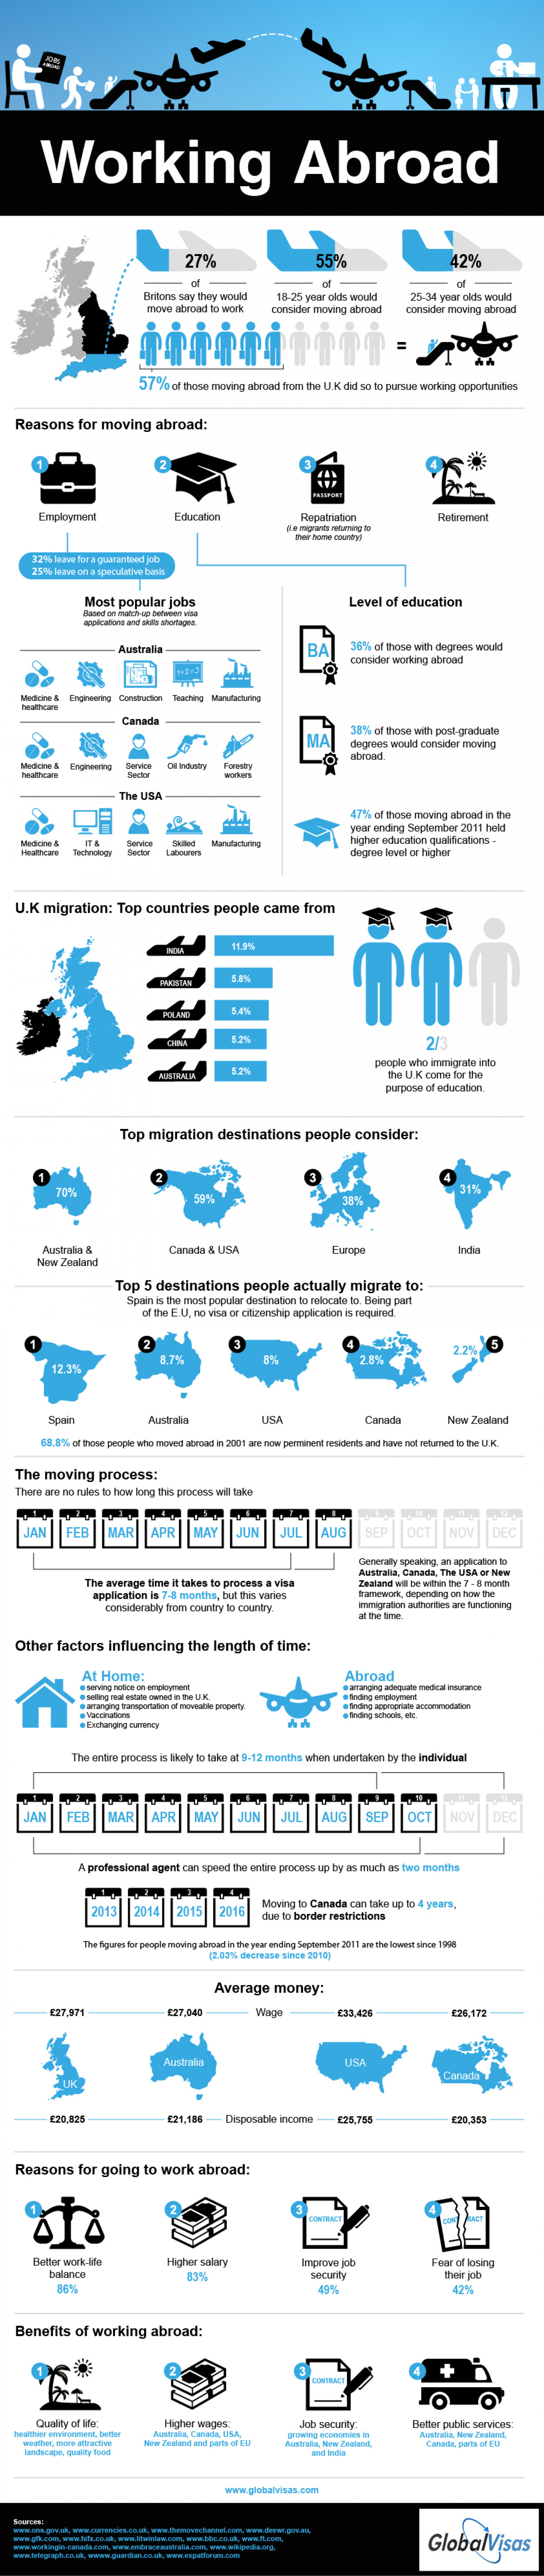 Working Abroad: Benefits and Destinations for Migrant Workers Infographic